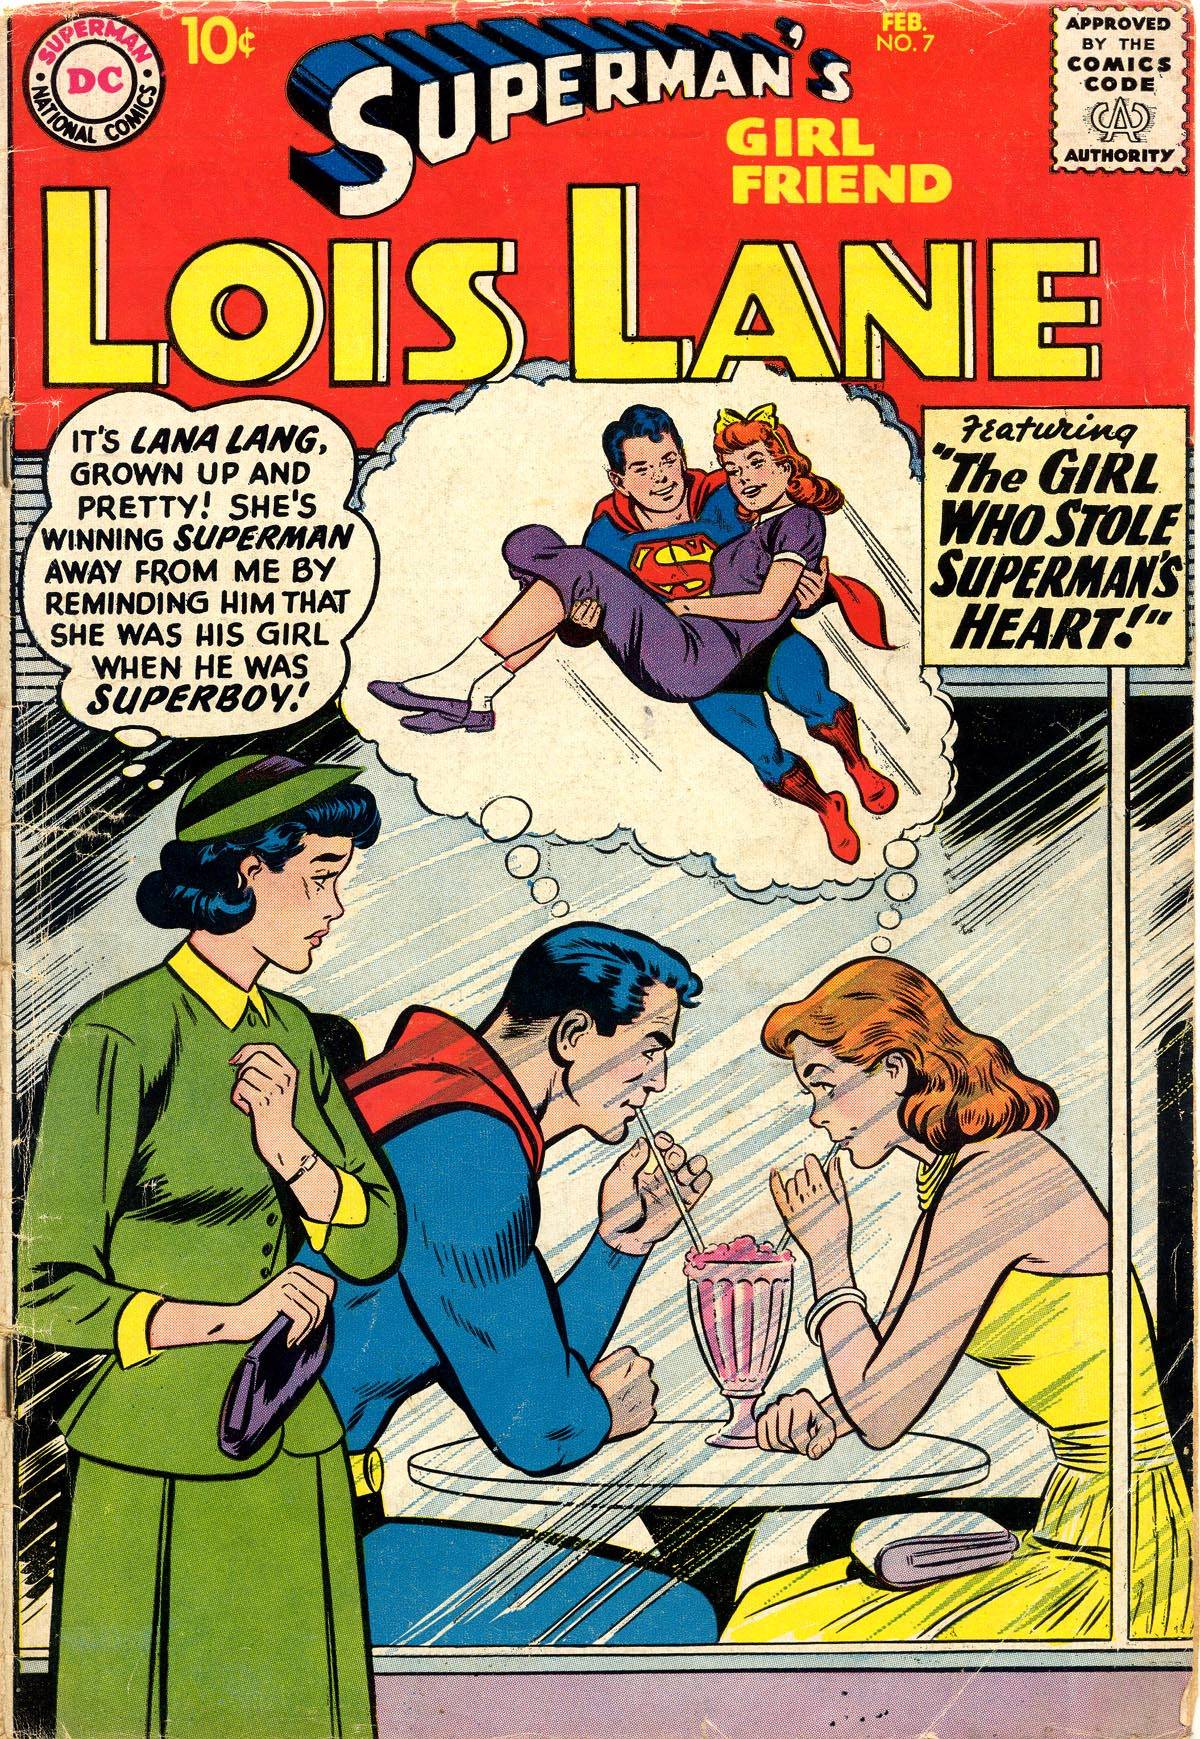 Supermans Girl Friend, Lois Lane 7 Page 1